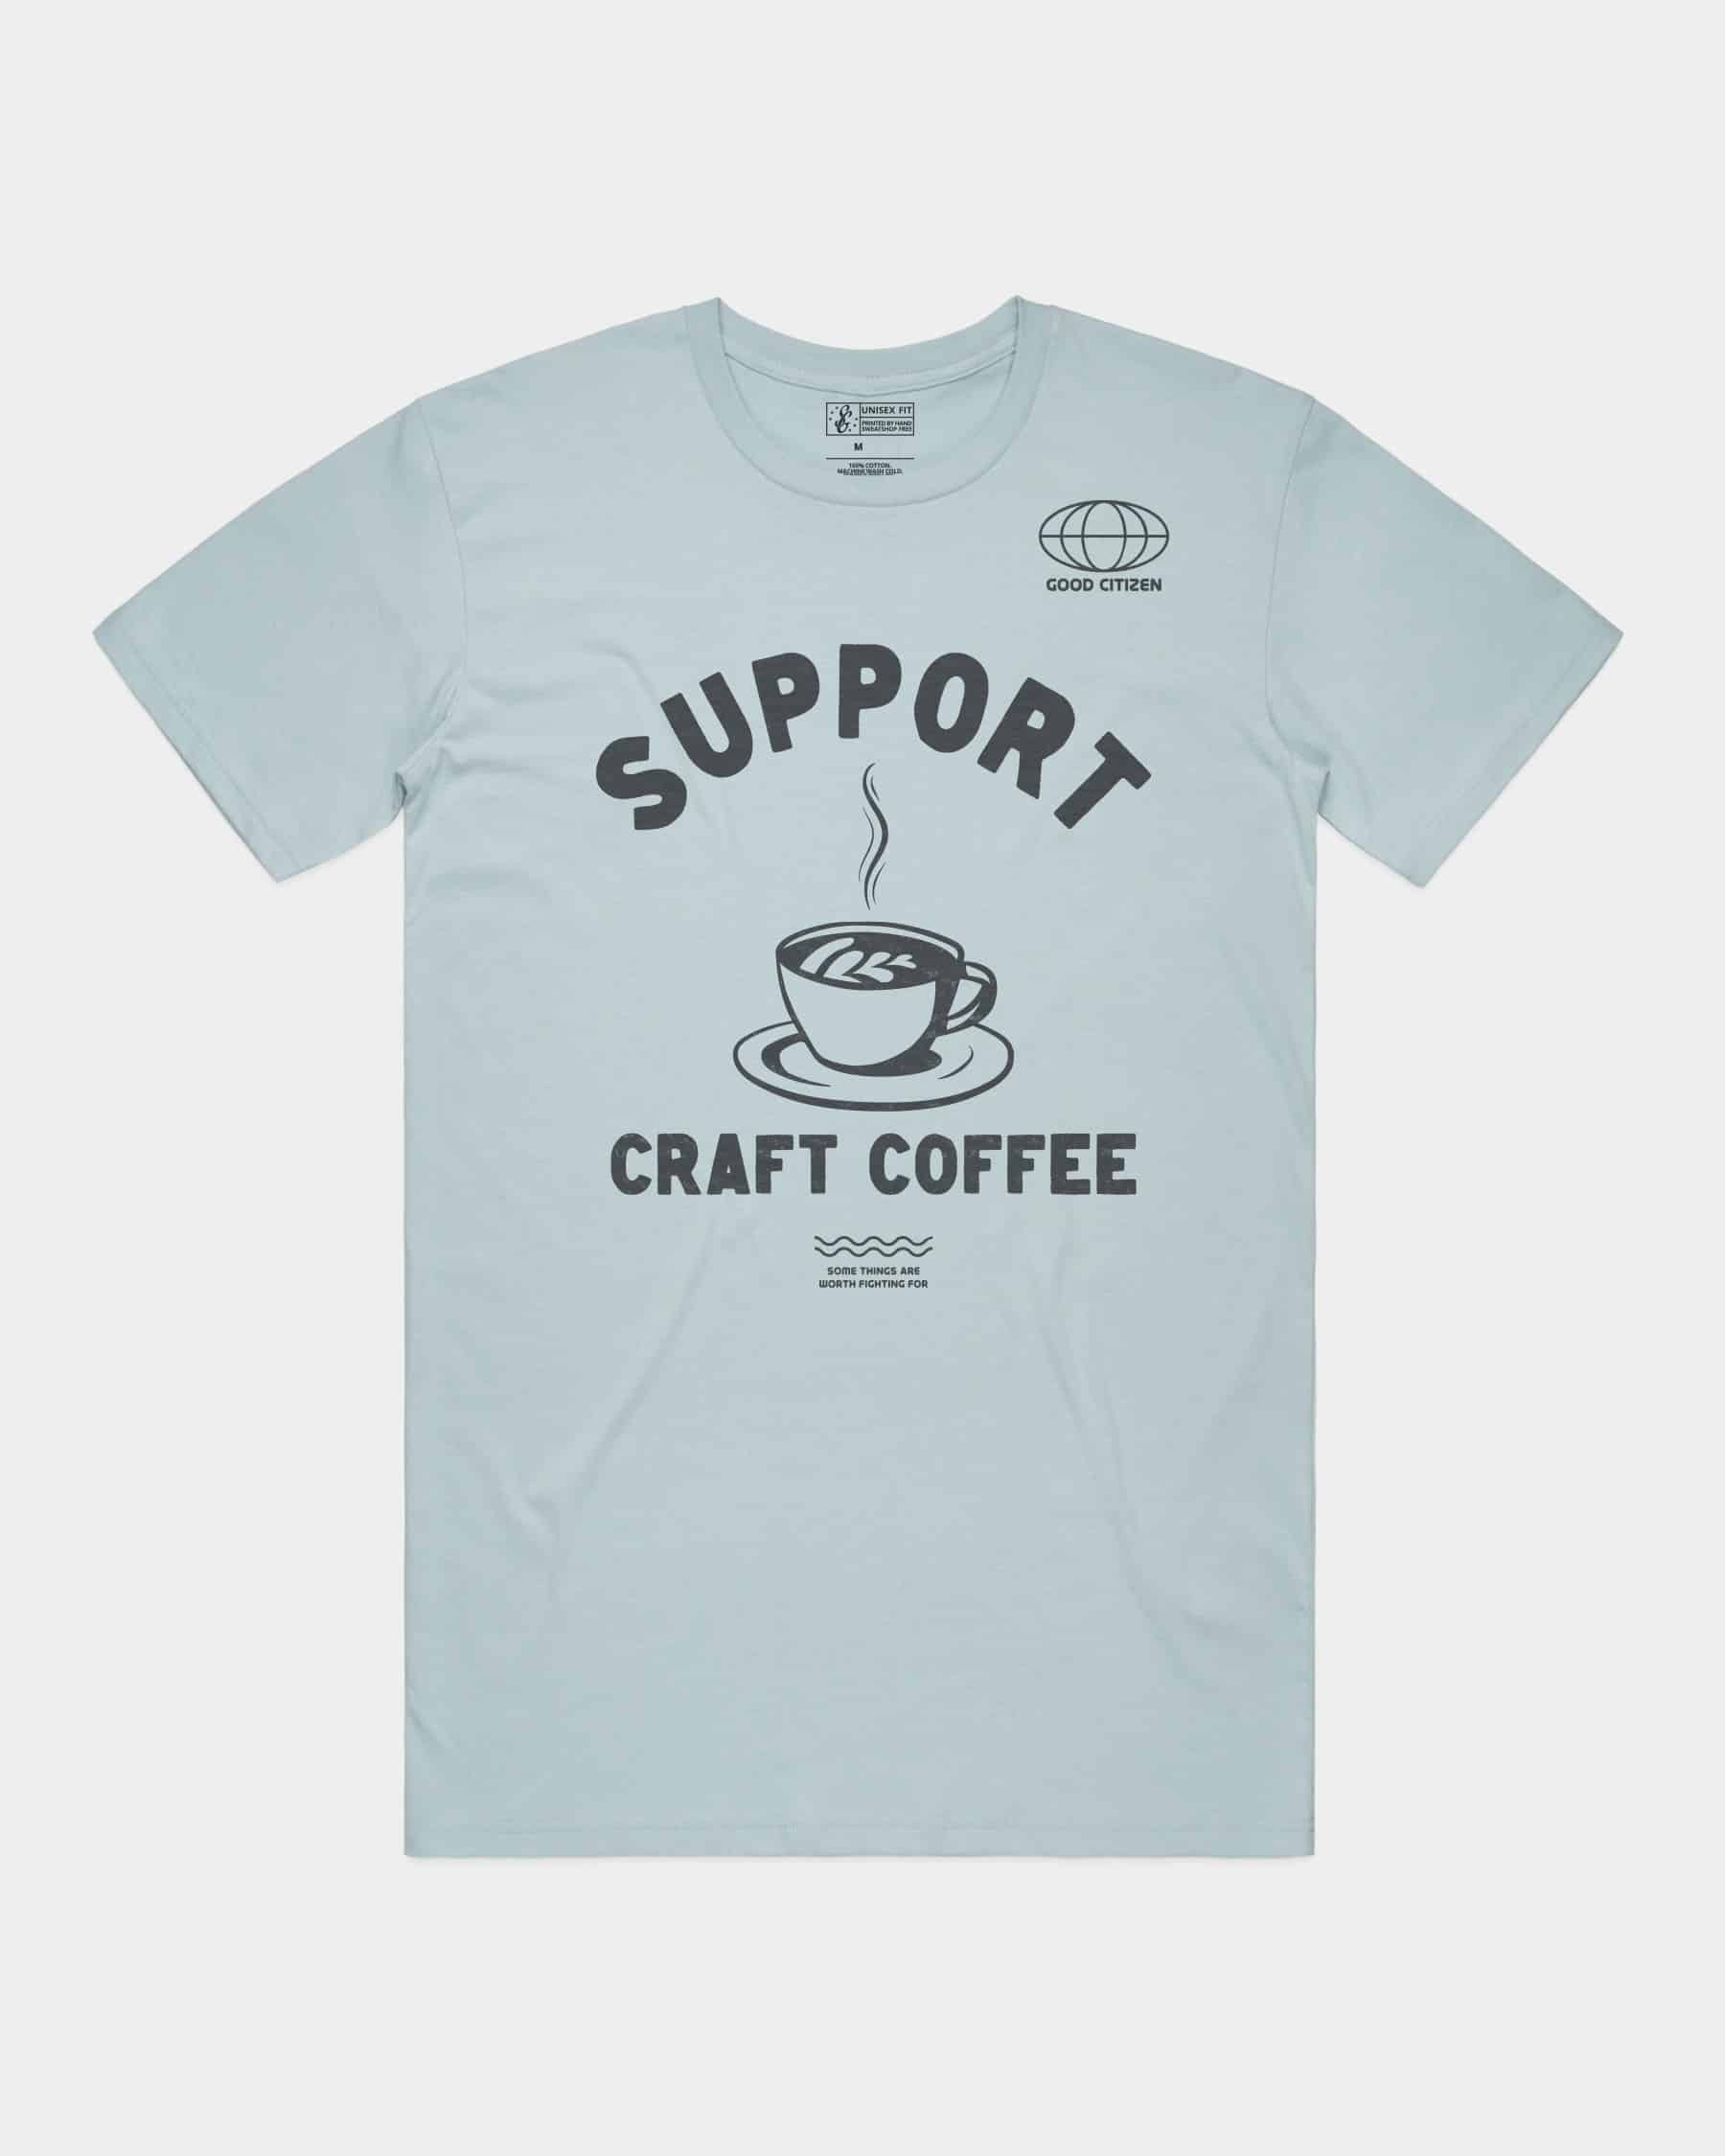 SOLIDARITY SERIES No. 7: Support Craft Coffee Tee